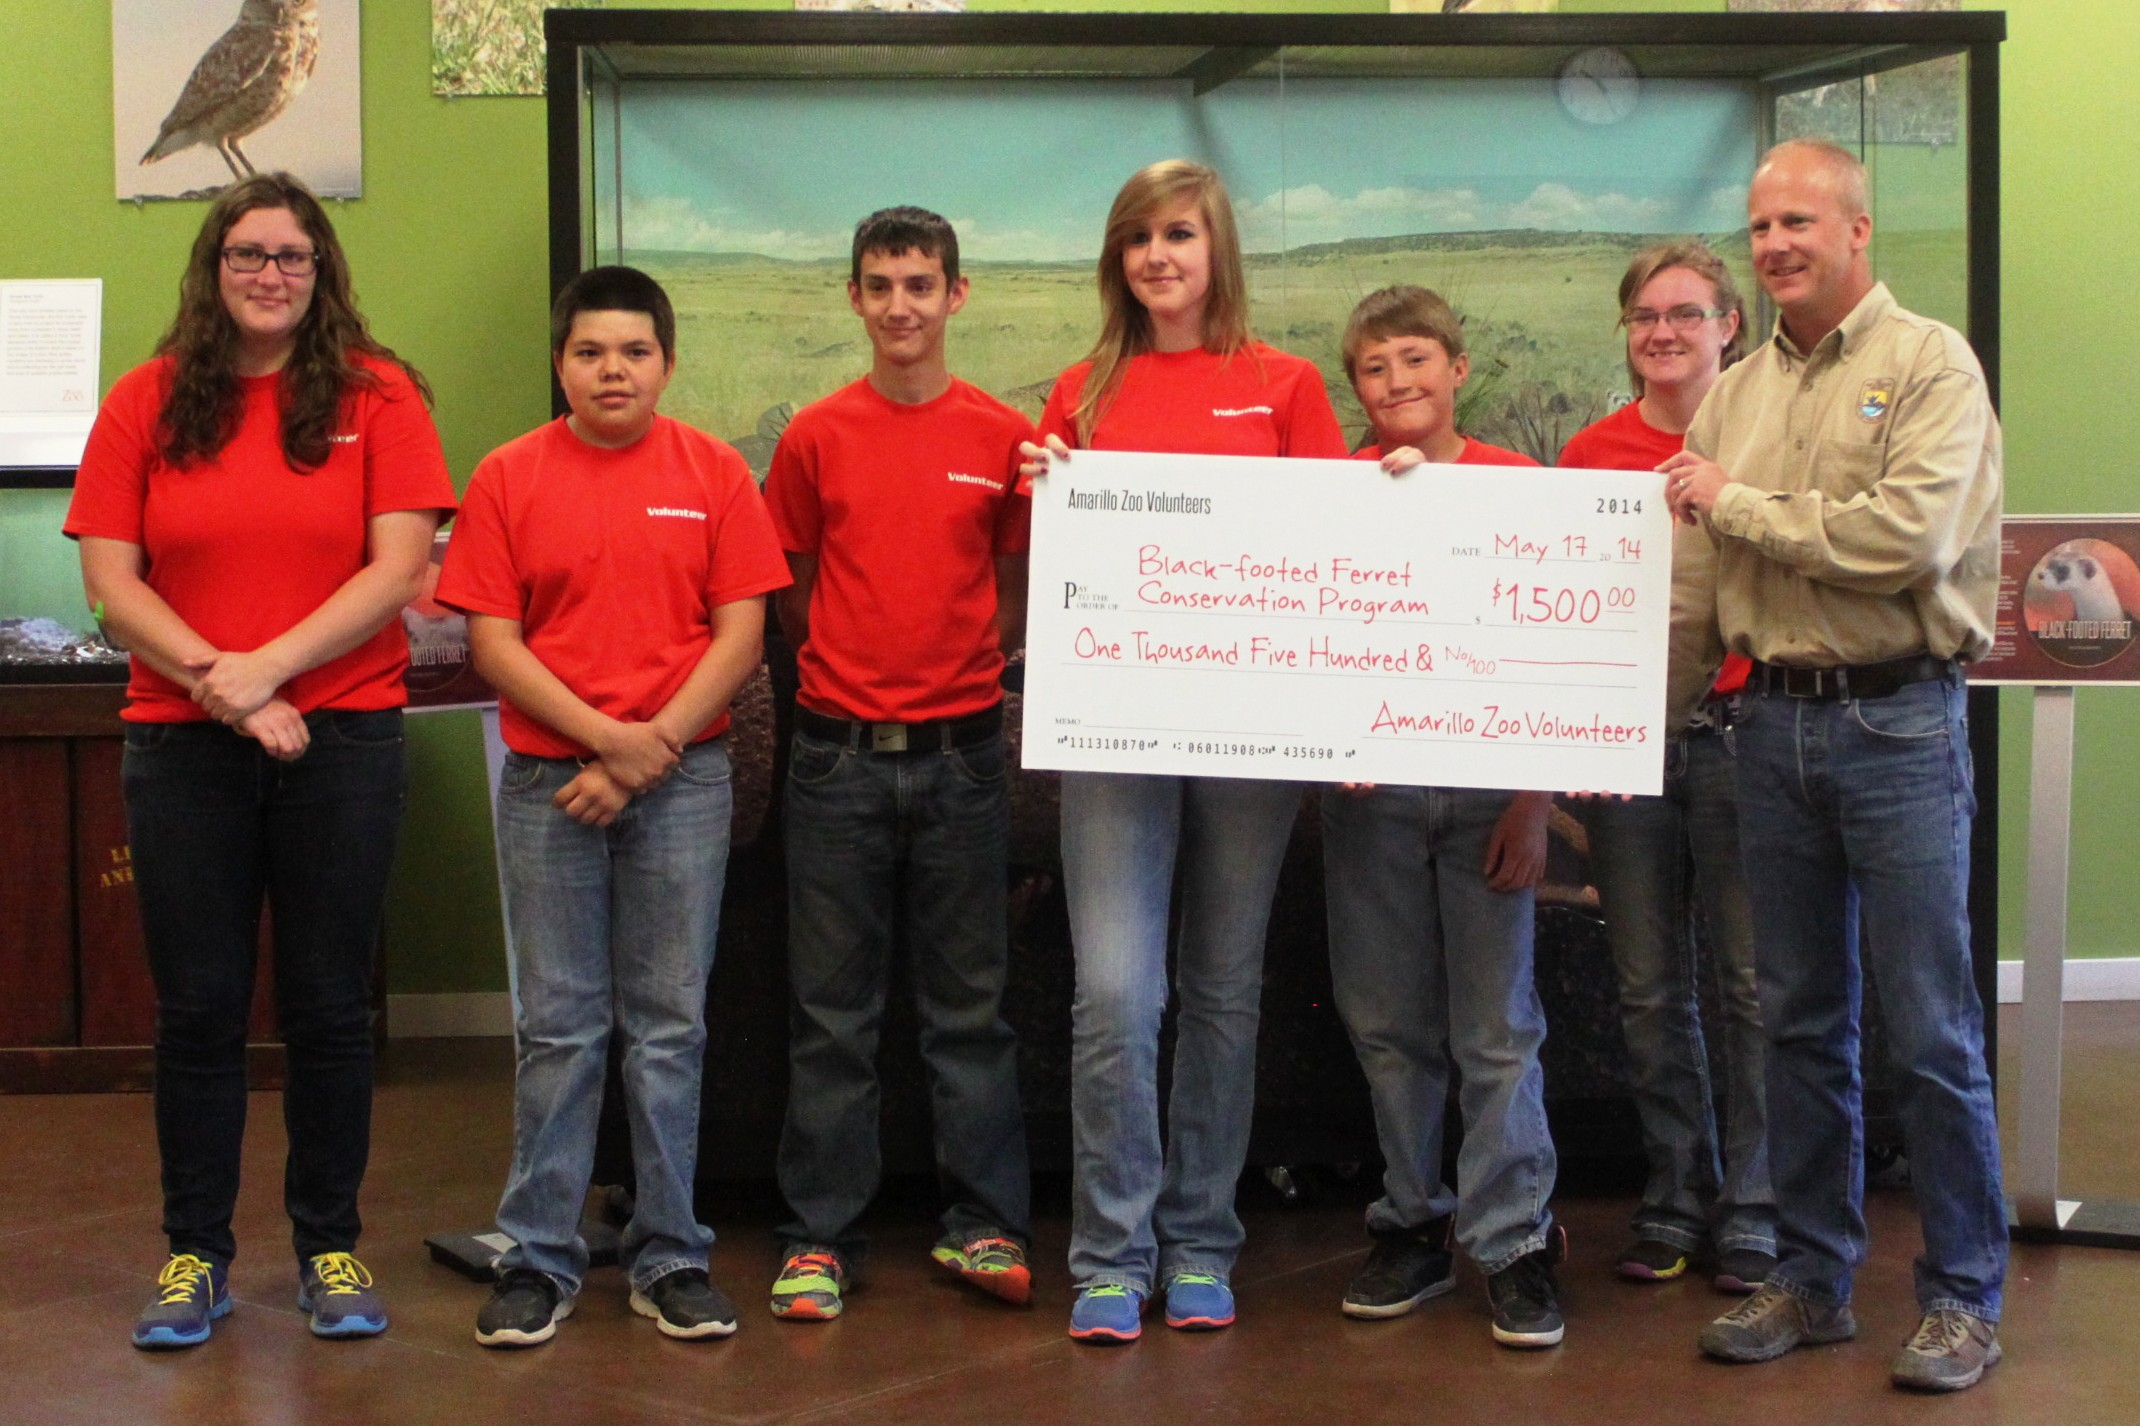 Zoo volunteers presenting check for black-footed ferret conservation